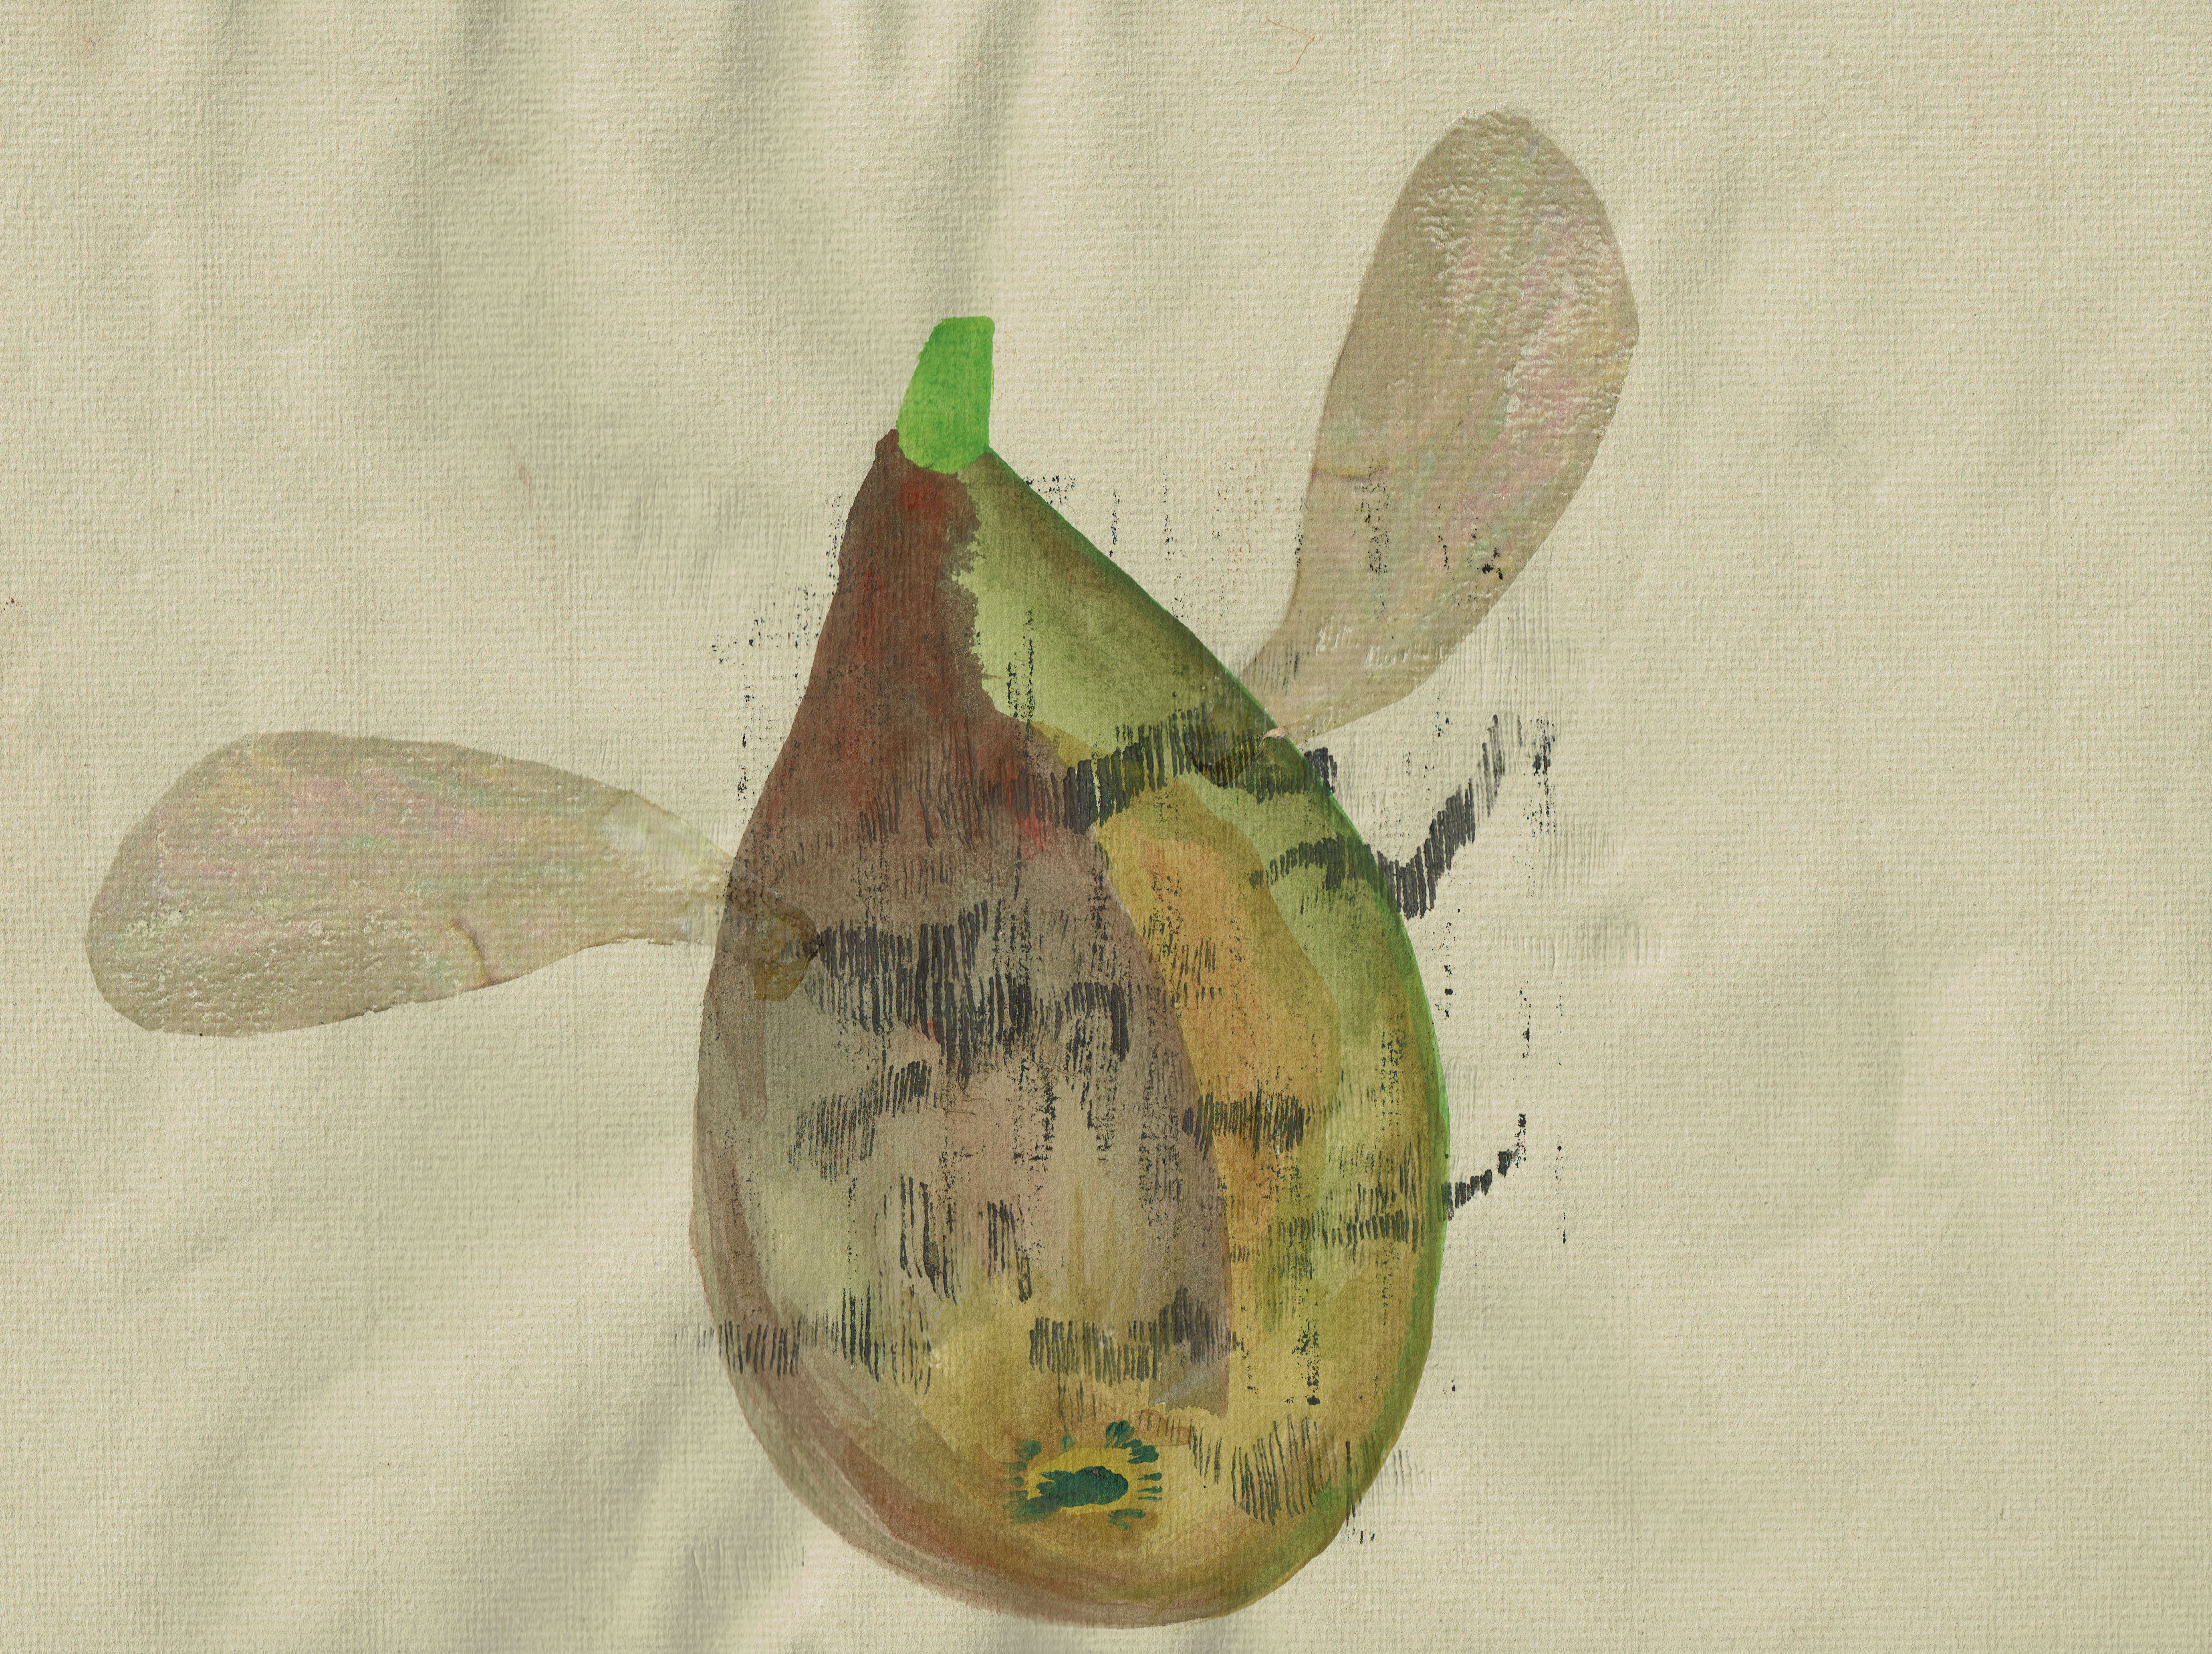 ALICIA ZHENG The Fig Wasp